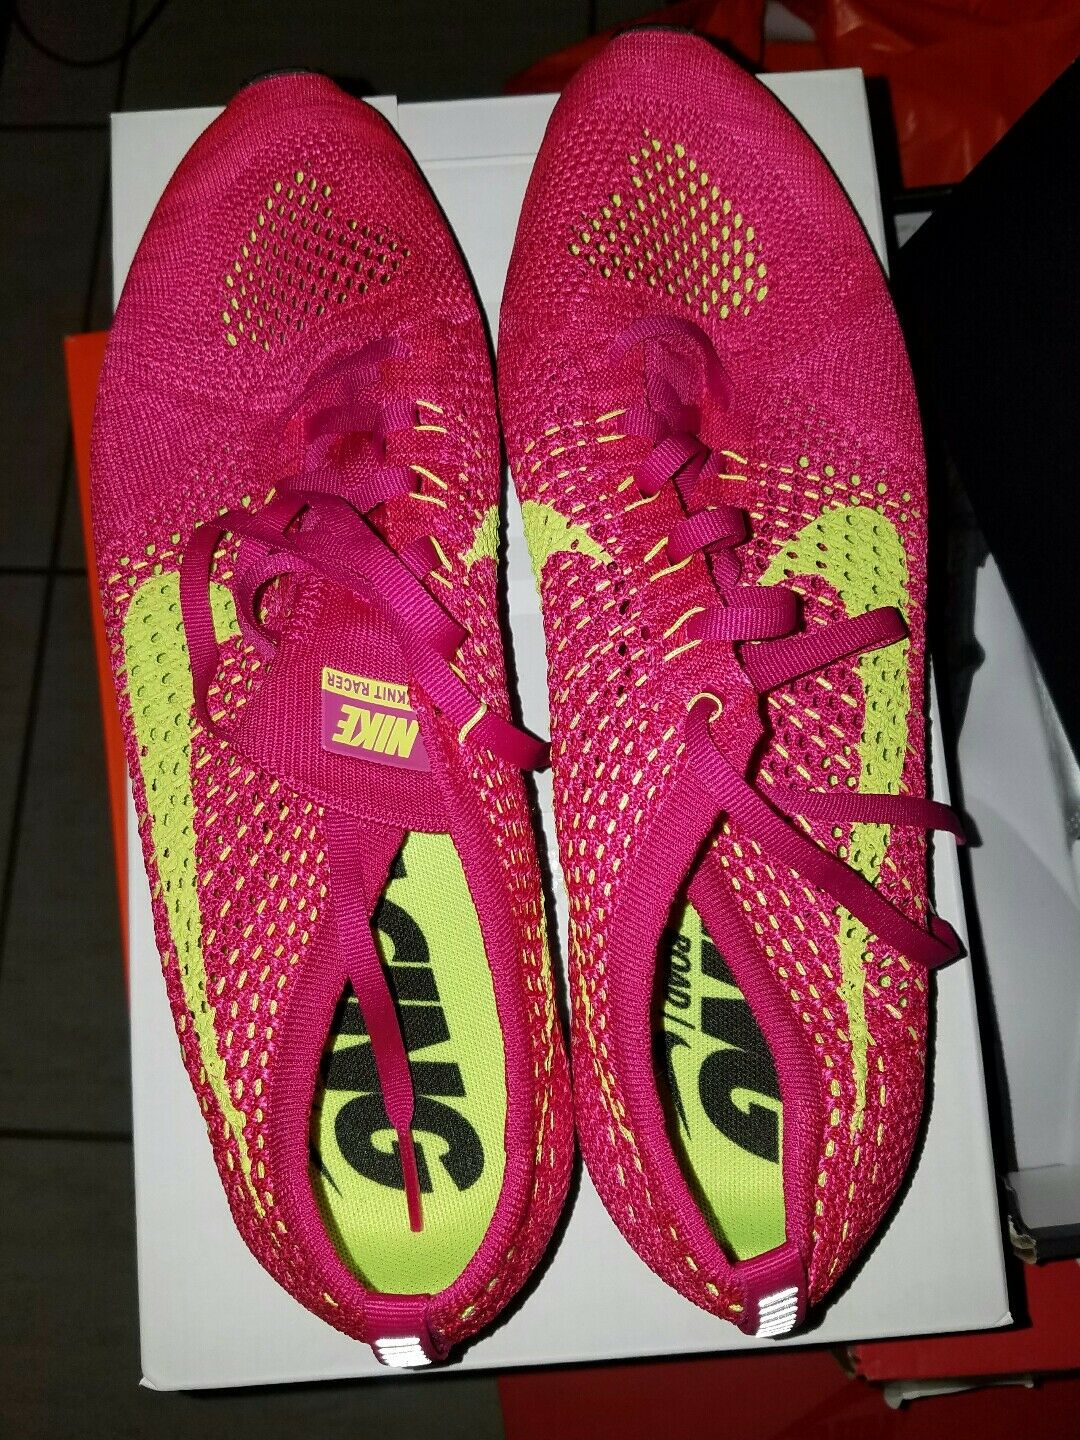 reputable site 74327 a573c Nike Flyknit Racer Hombre sz 10,5 10,5 10,5 Mujer SZ